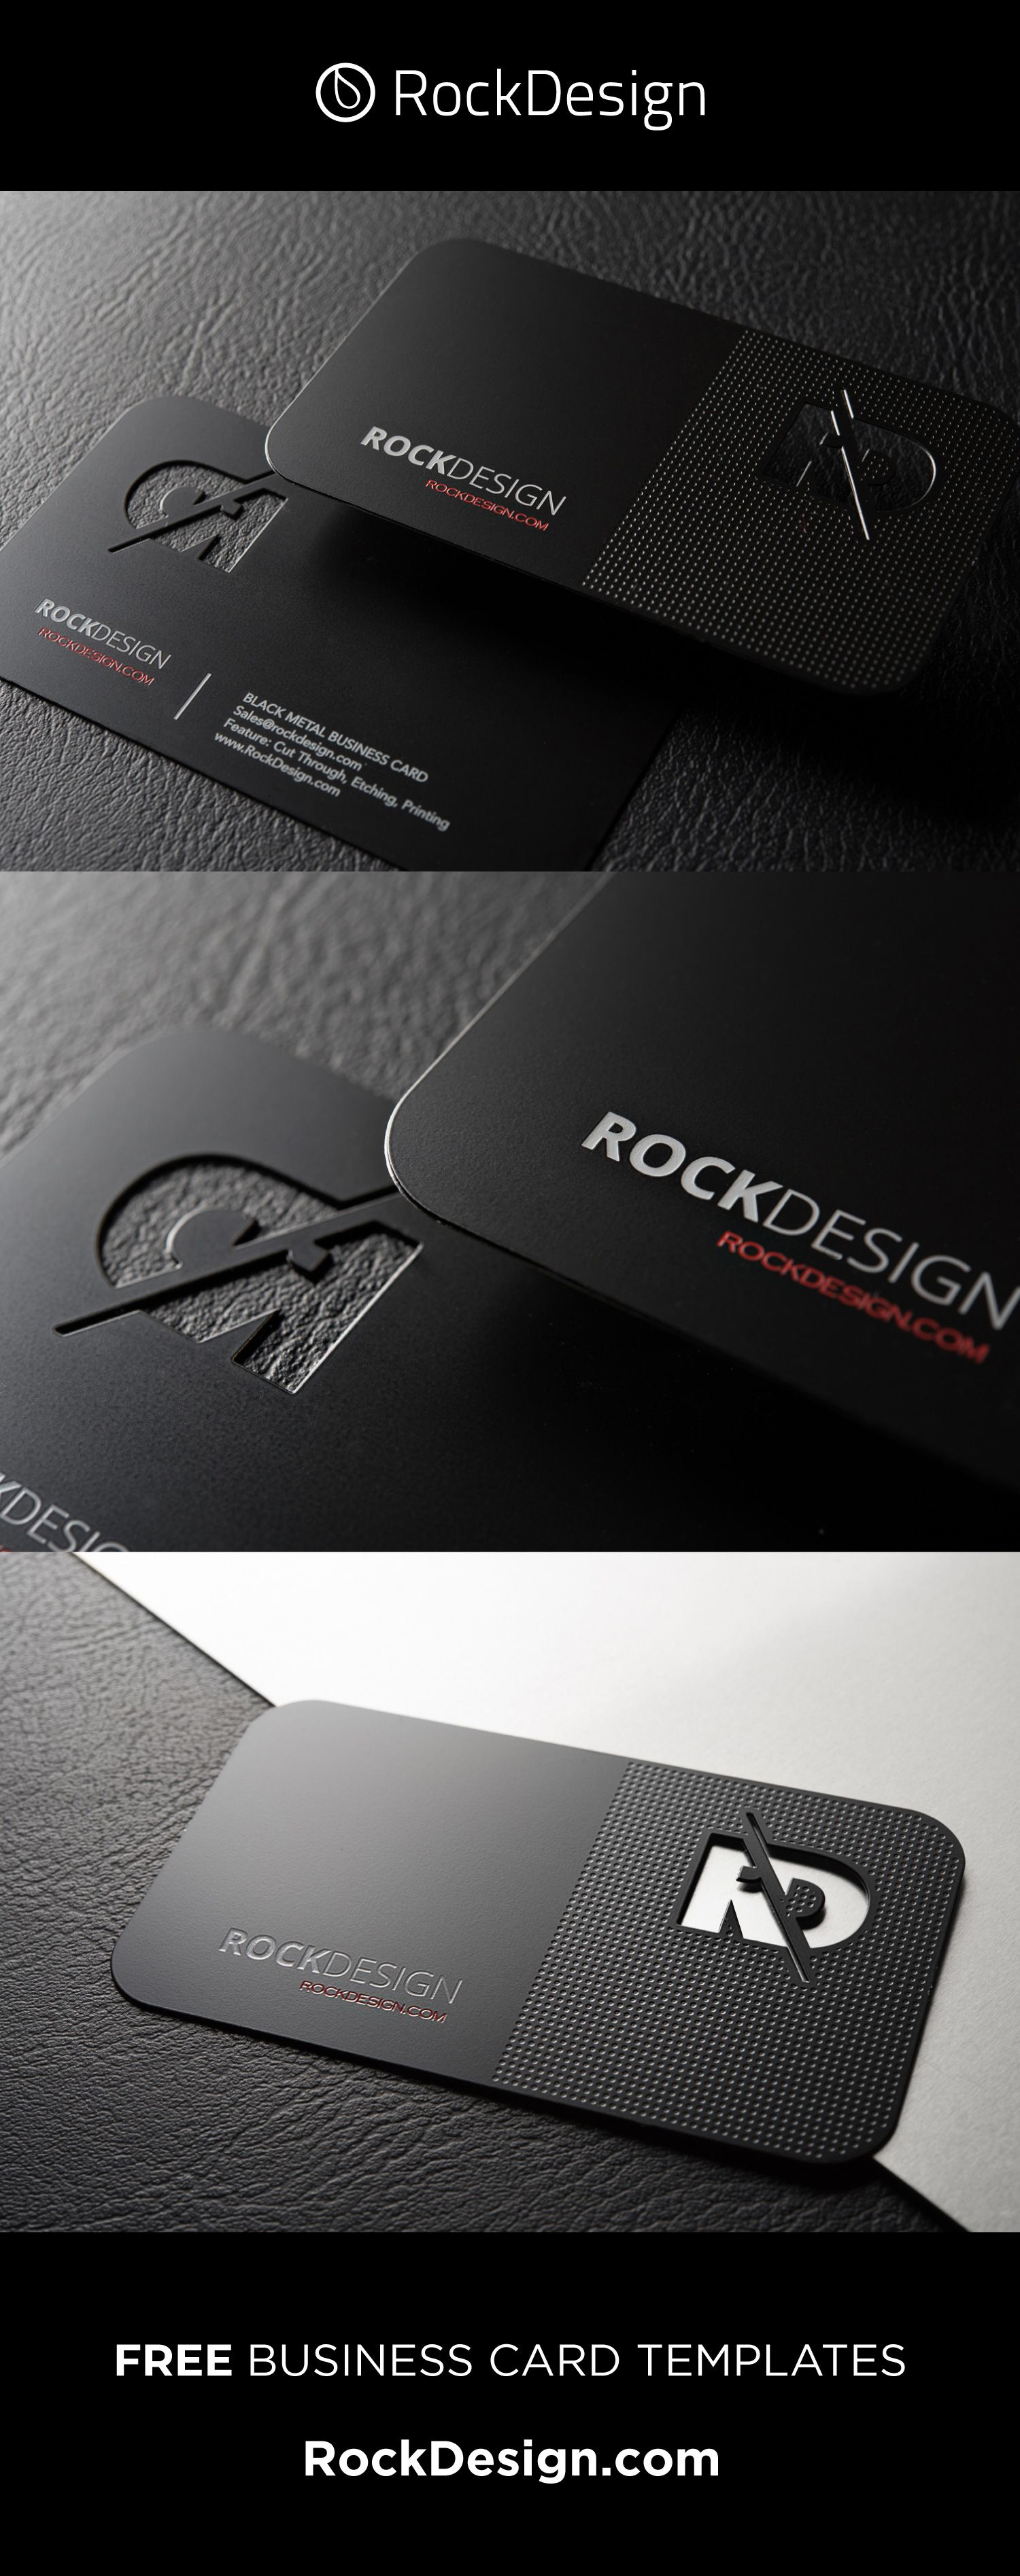 Professional Black Metal Business Card Template Rd Business Card Design Creative Metal Business Cards Graphic Design Business Card